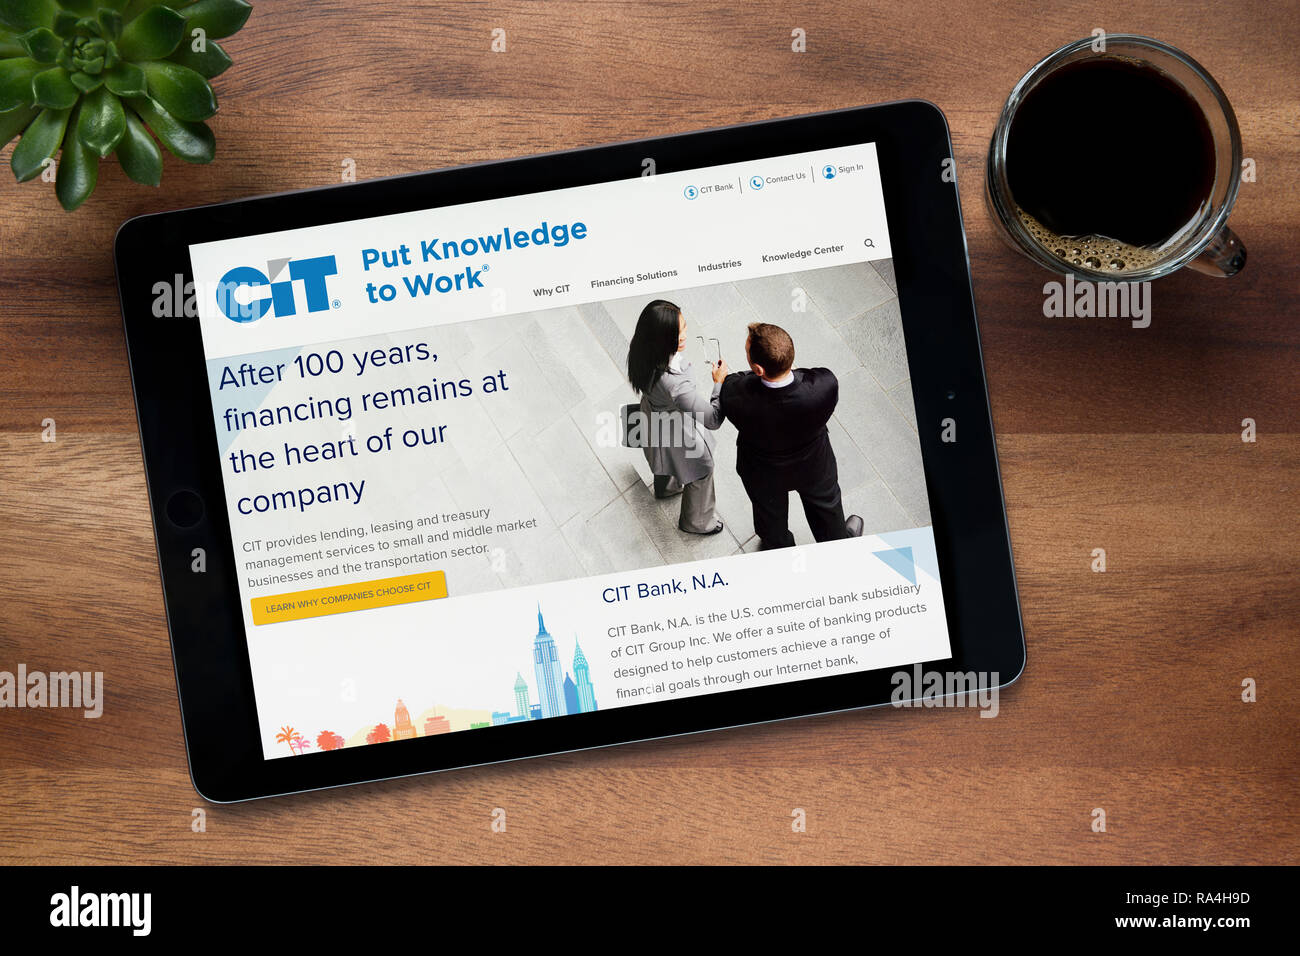 The website of CIT bank is seen on an iPad tablet, on a wooden table along with an espresso coffee and a house plant (Editorial use only). - Stock Image